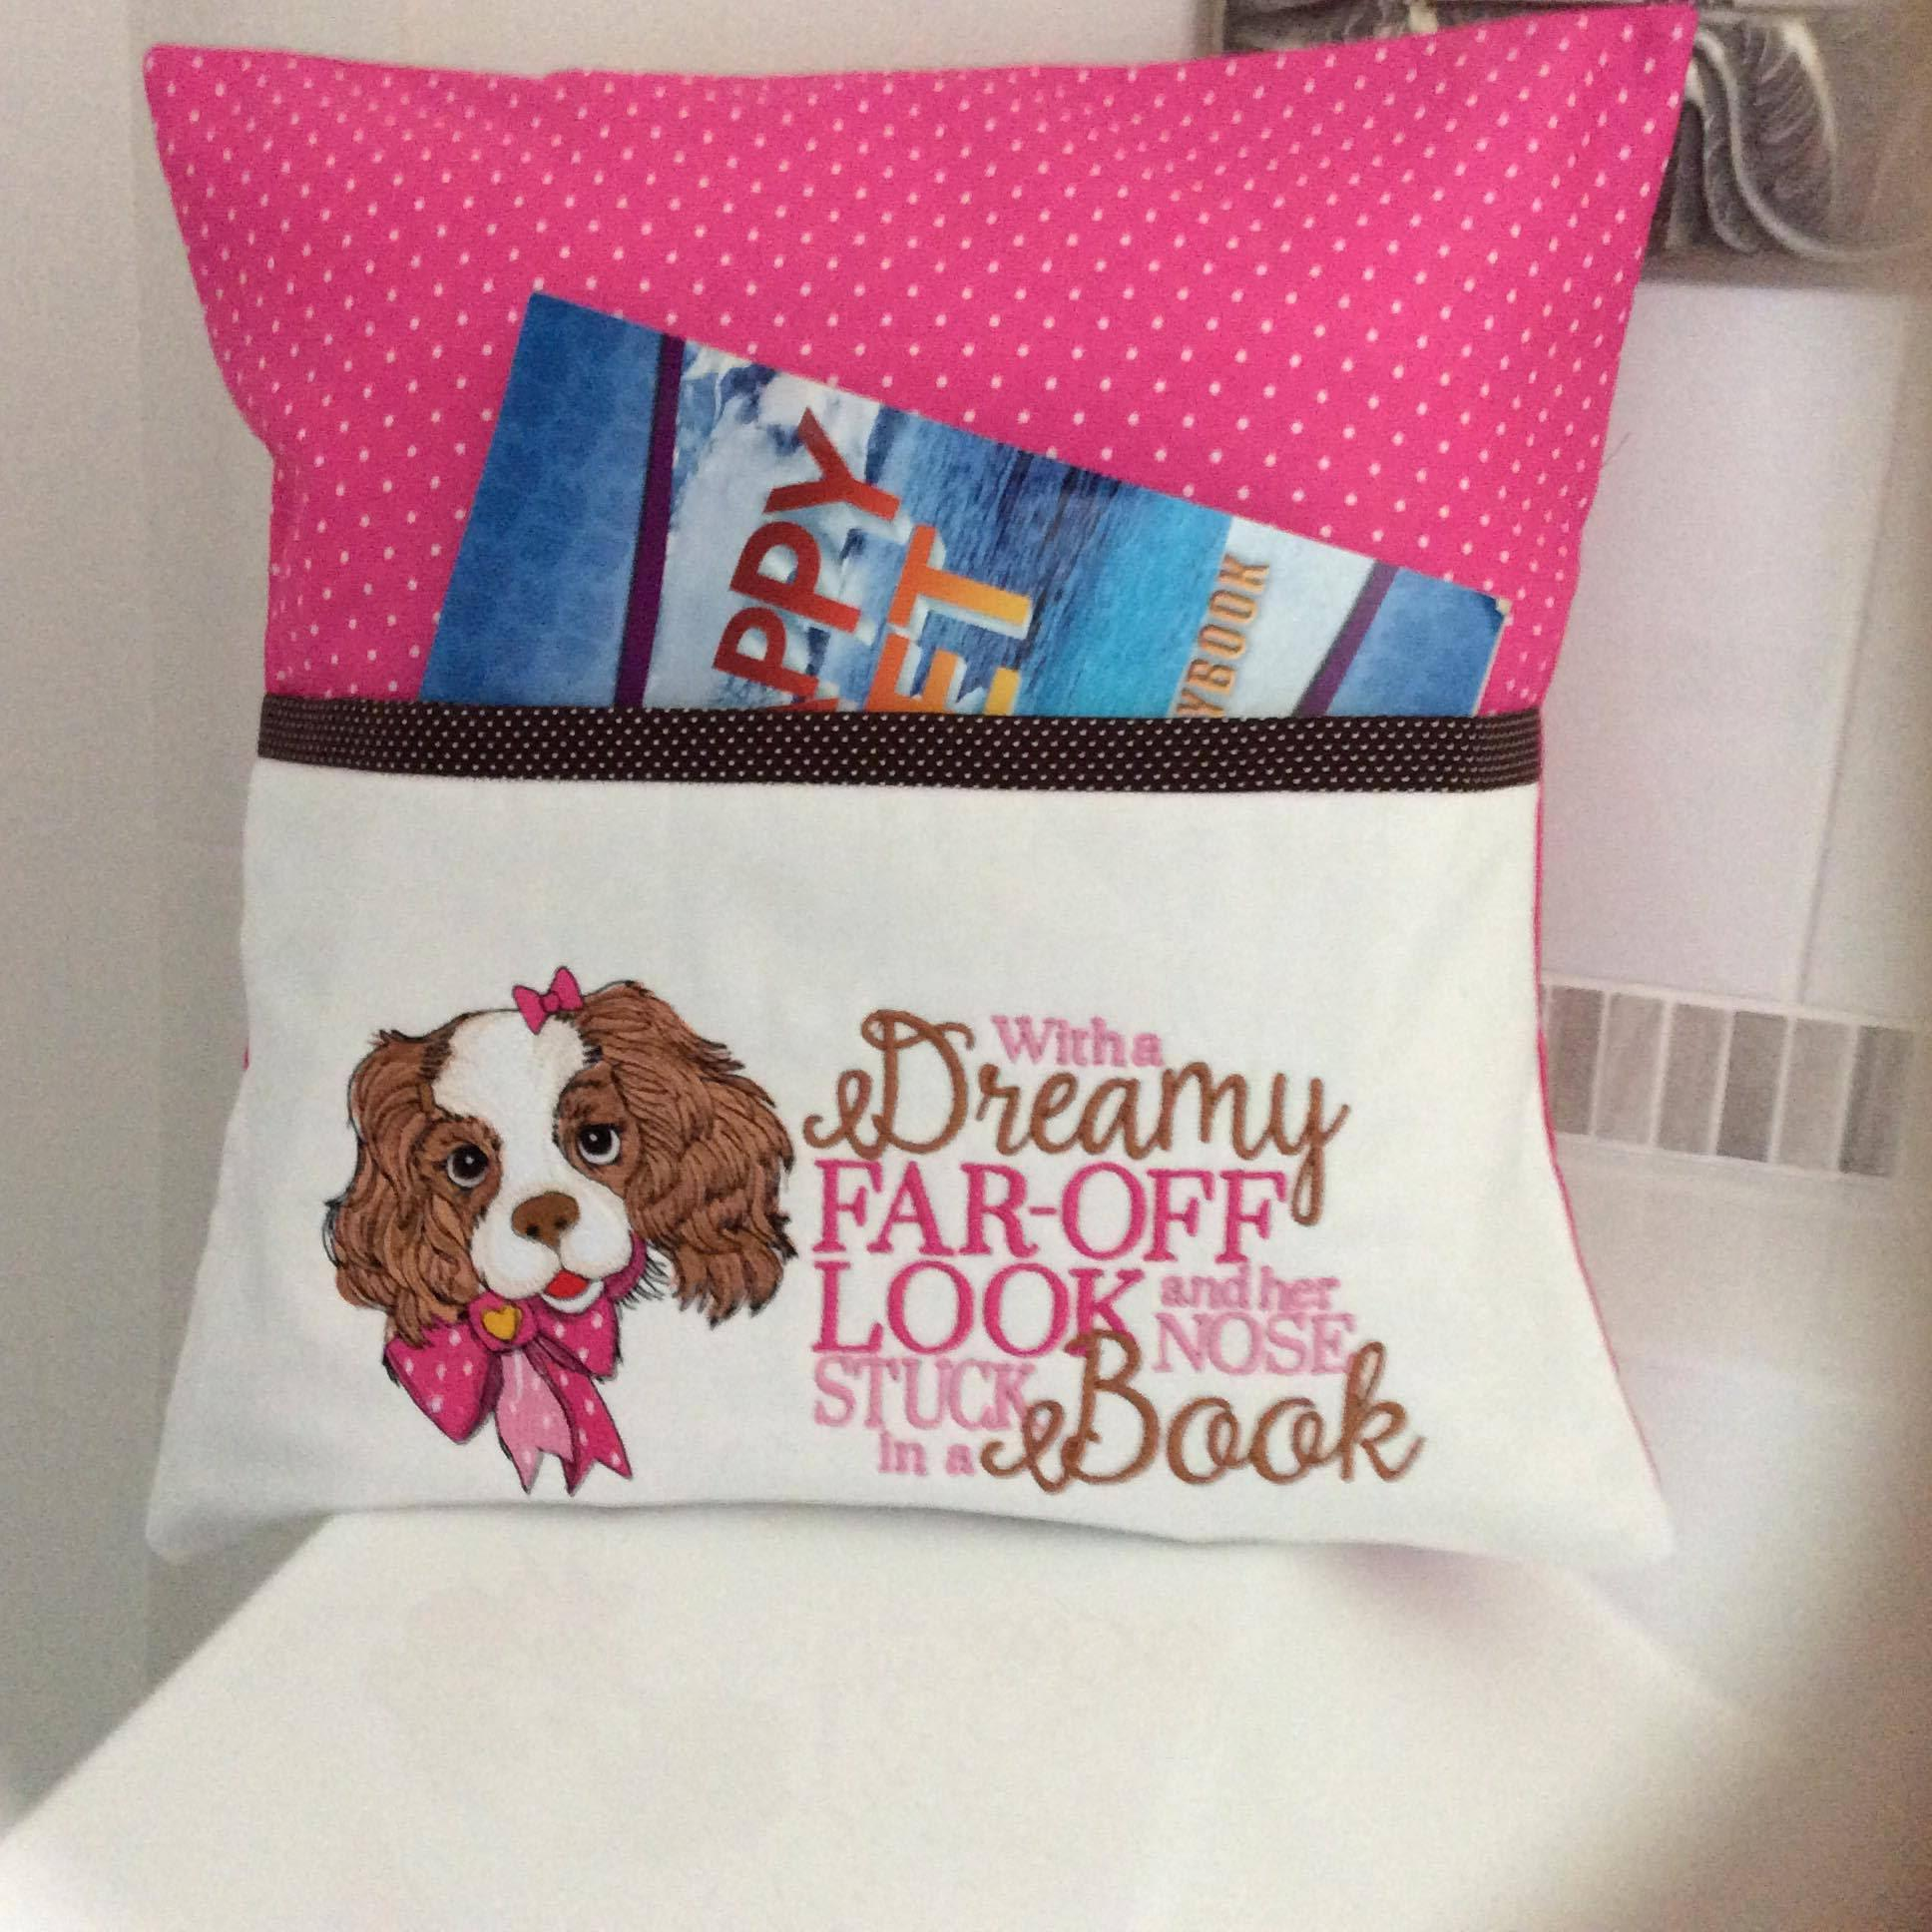 Embroidered pillow with spaniel puppy design